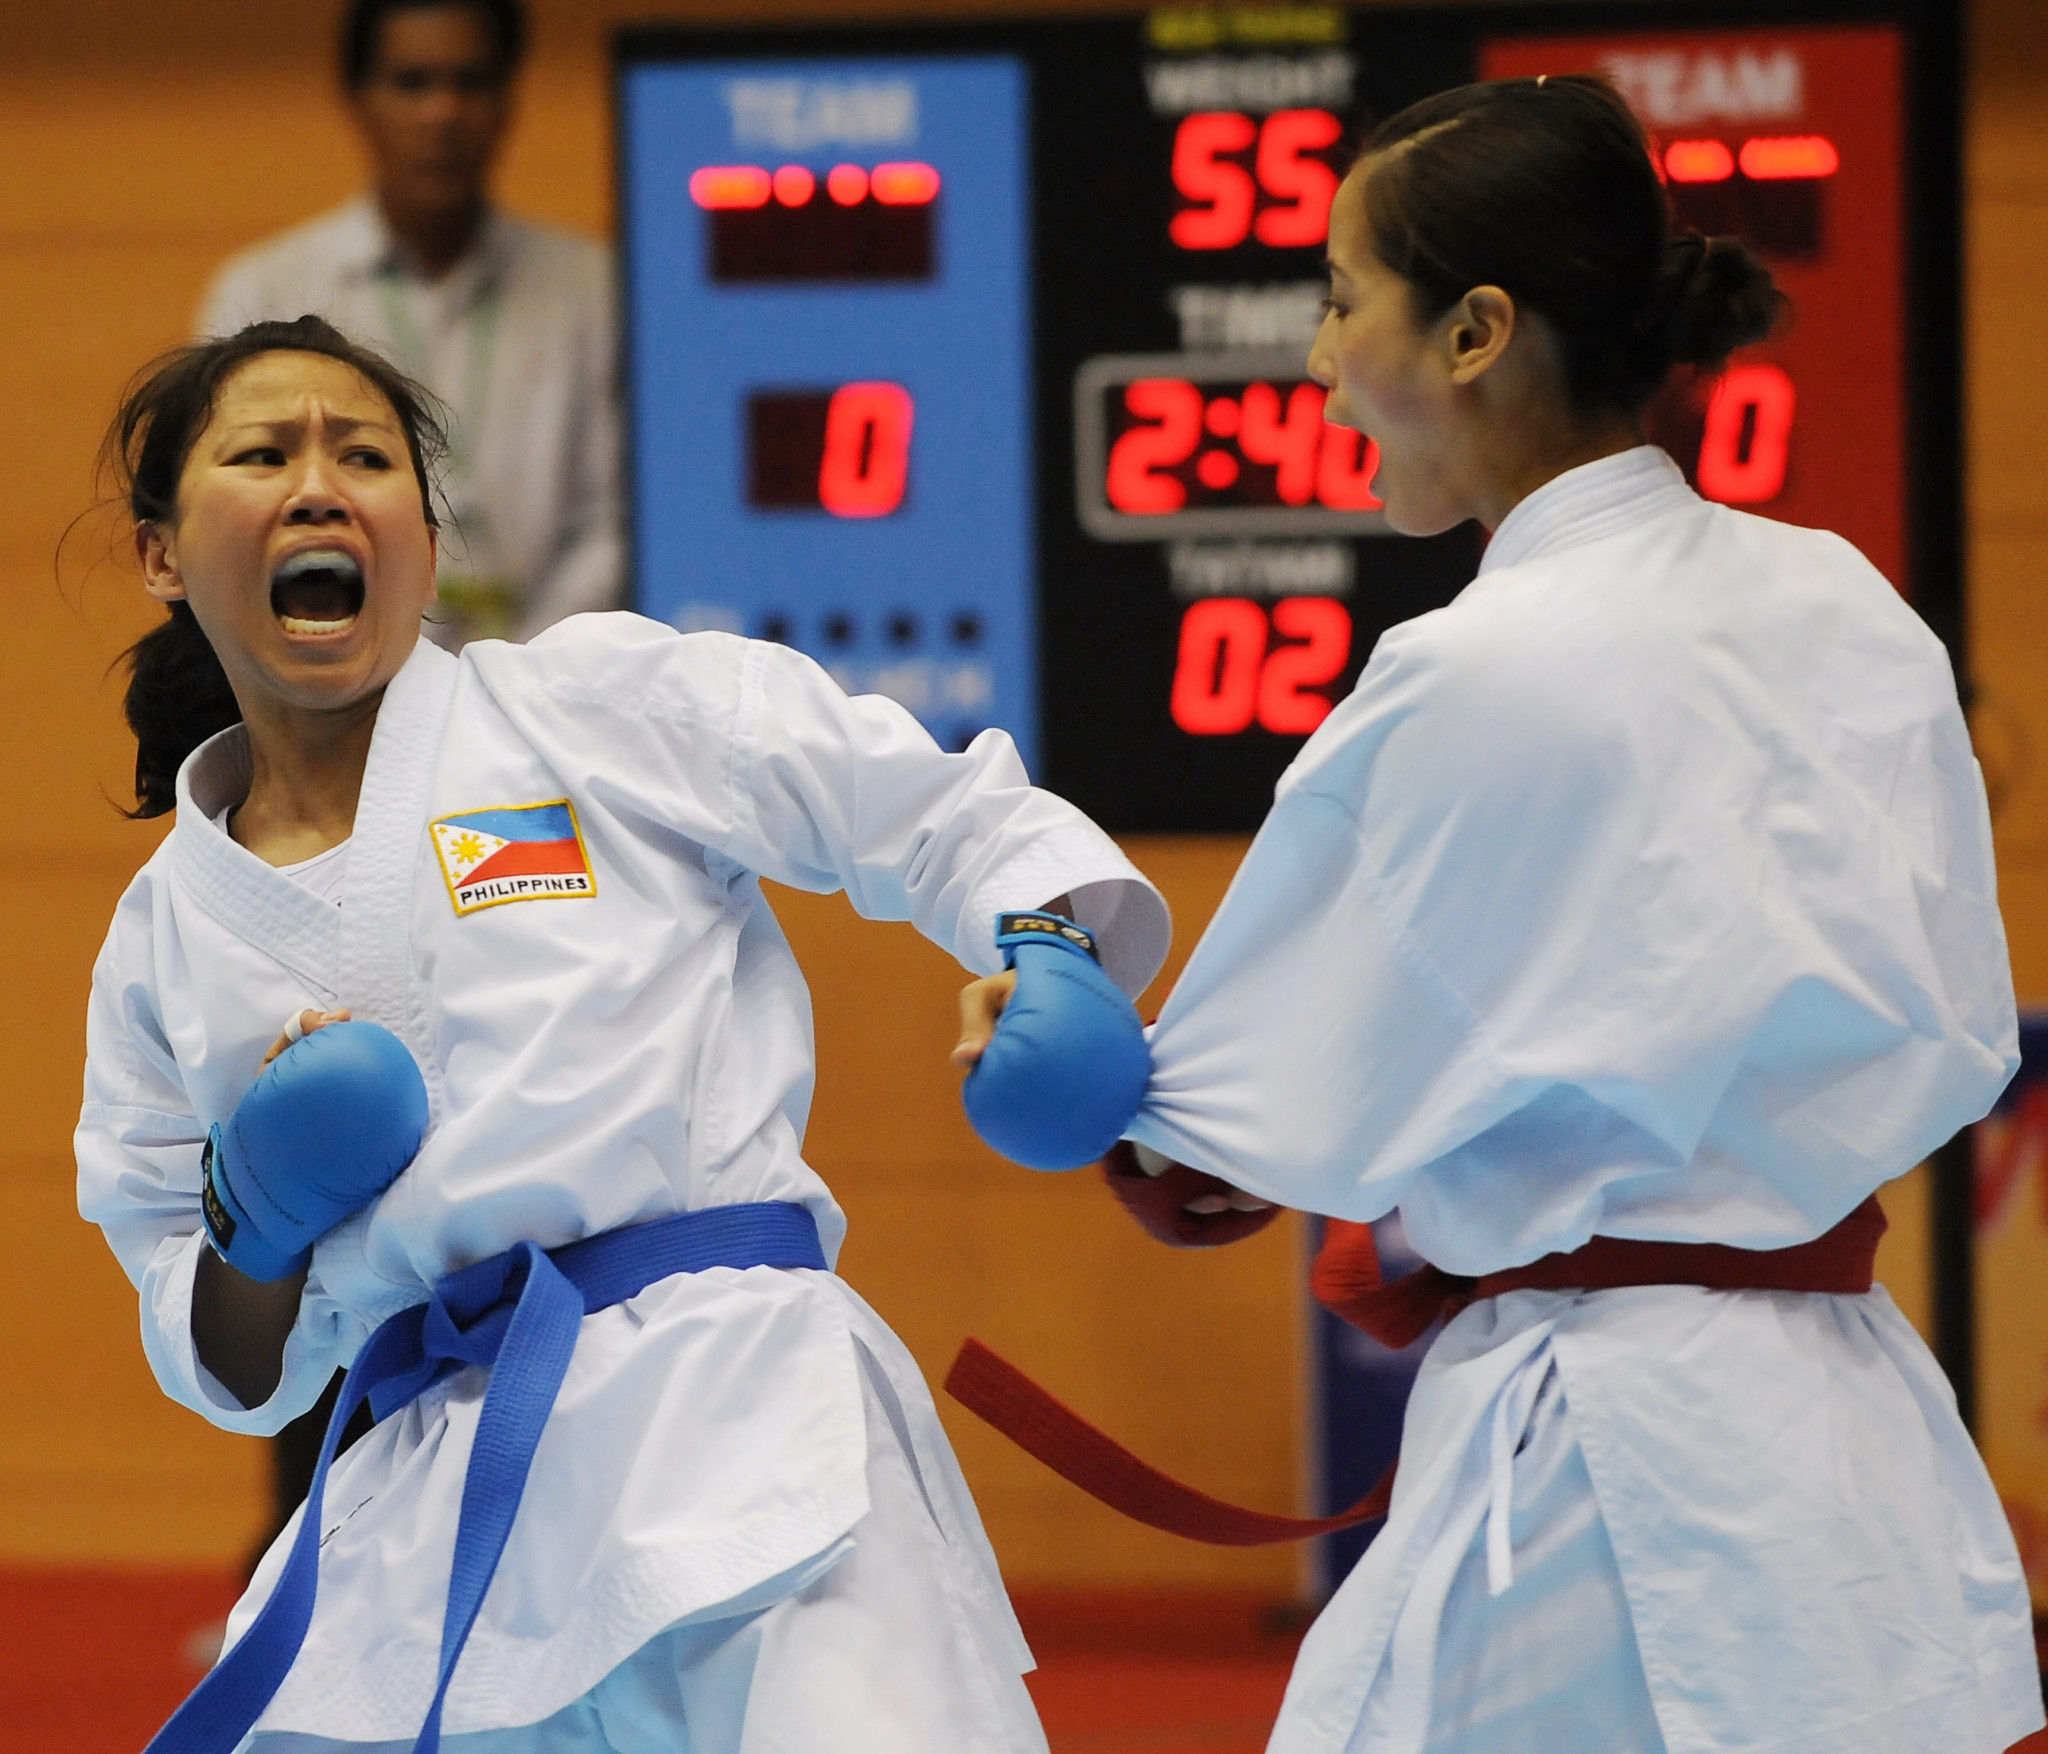 Karate and dancesport to be inducted into Philippine Olympic Committee